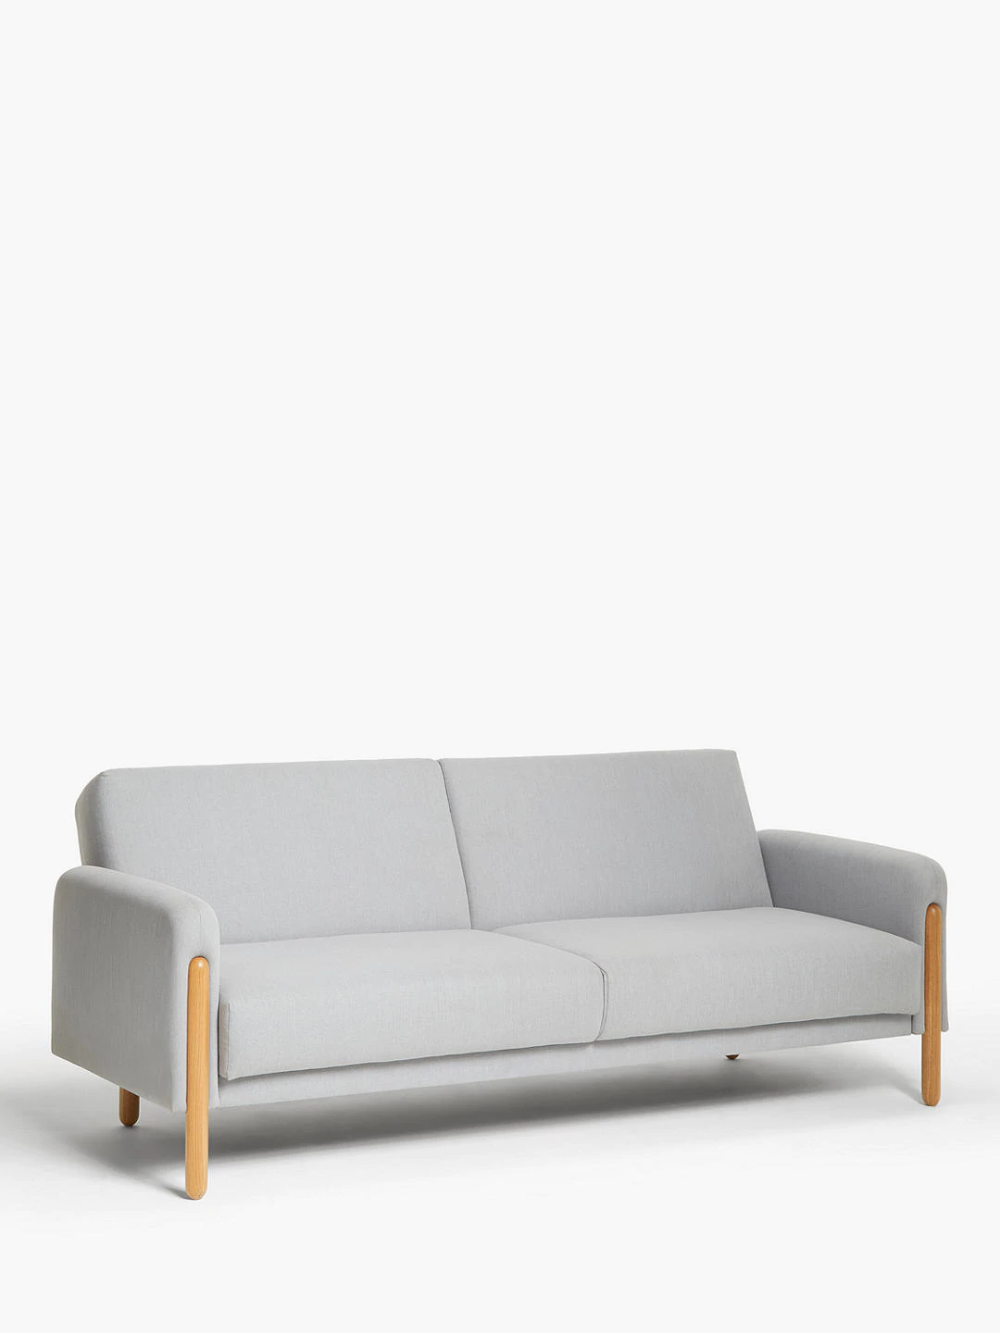 House By John Lewis Show Wood Sofa Bed Light Leg Topaz Light Grey Wood Sofa House By John Lewis Sofa Bed